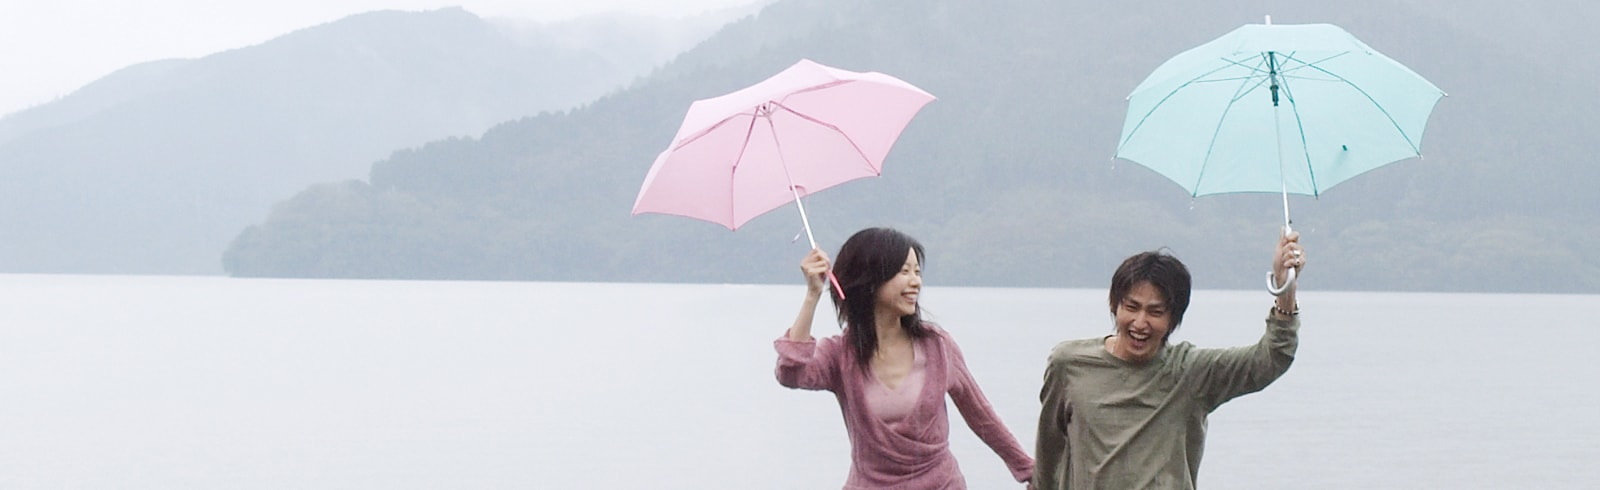 Couple holding an umbrella in the rain laughing